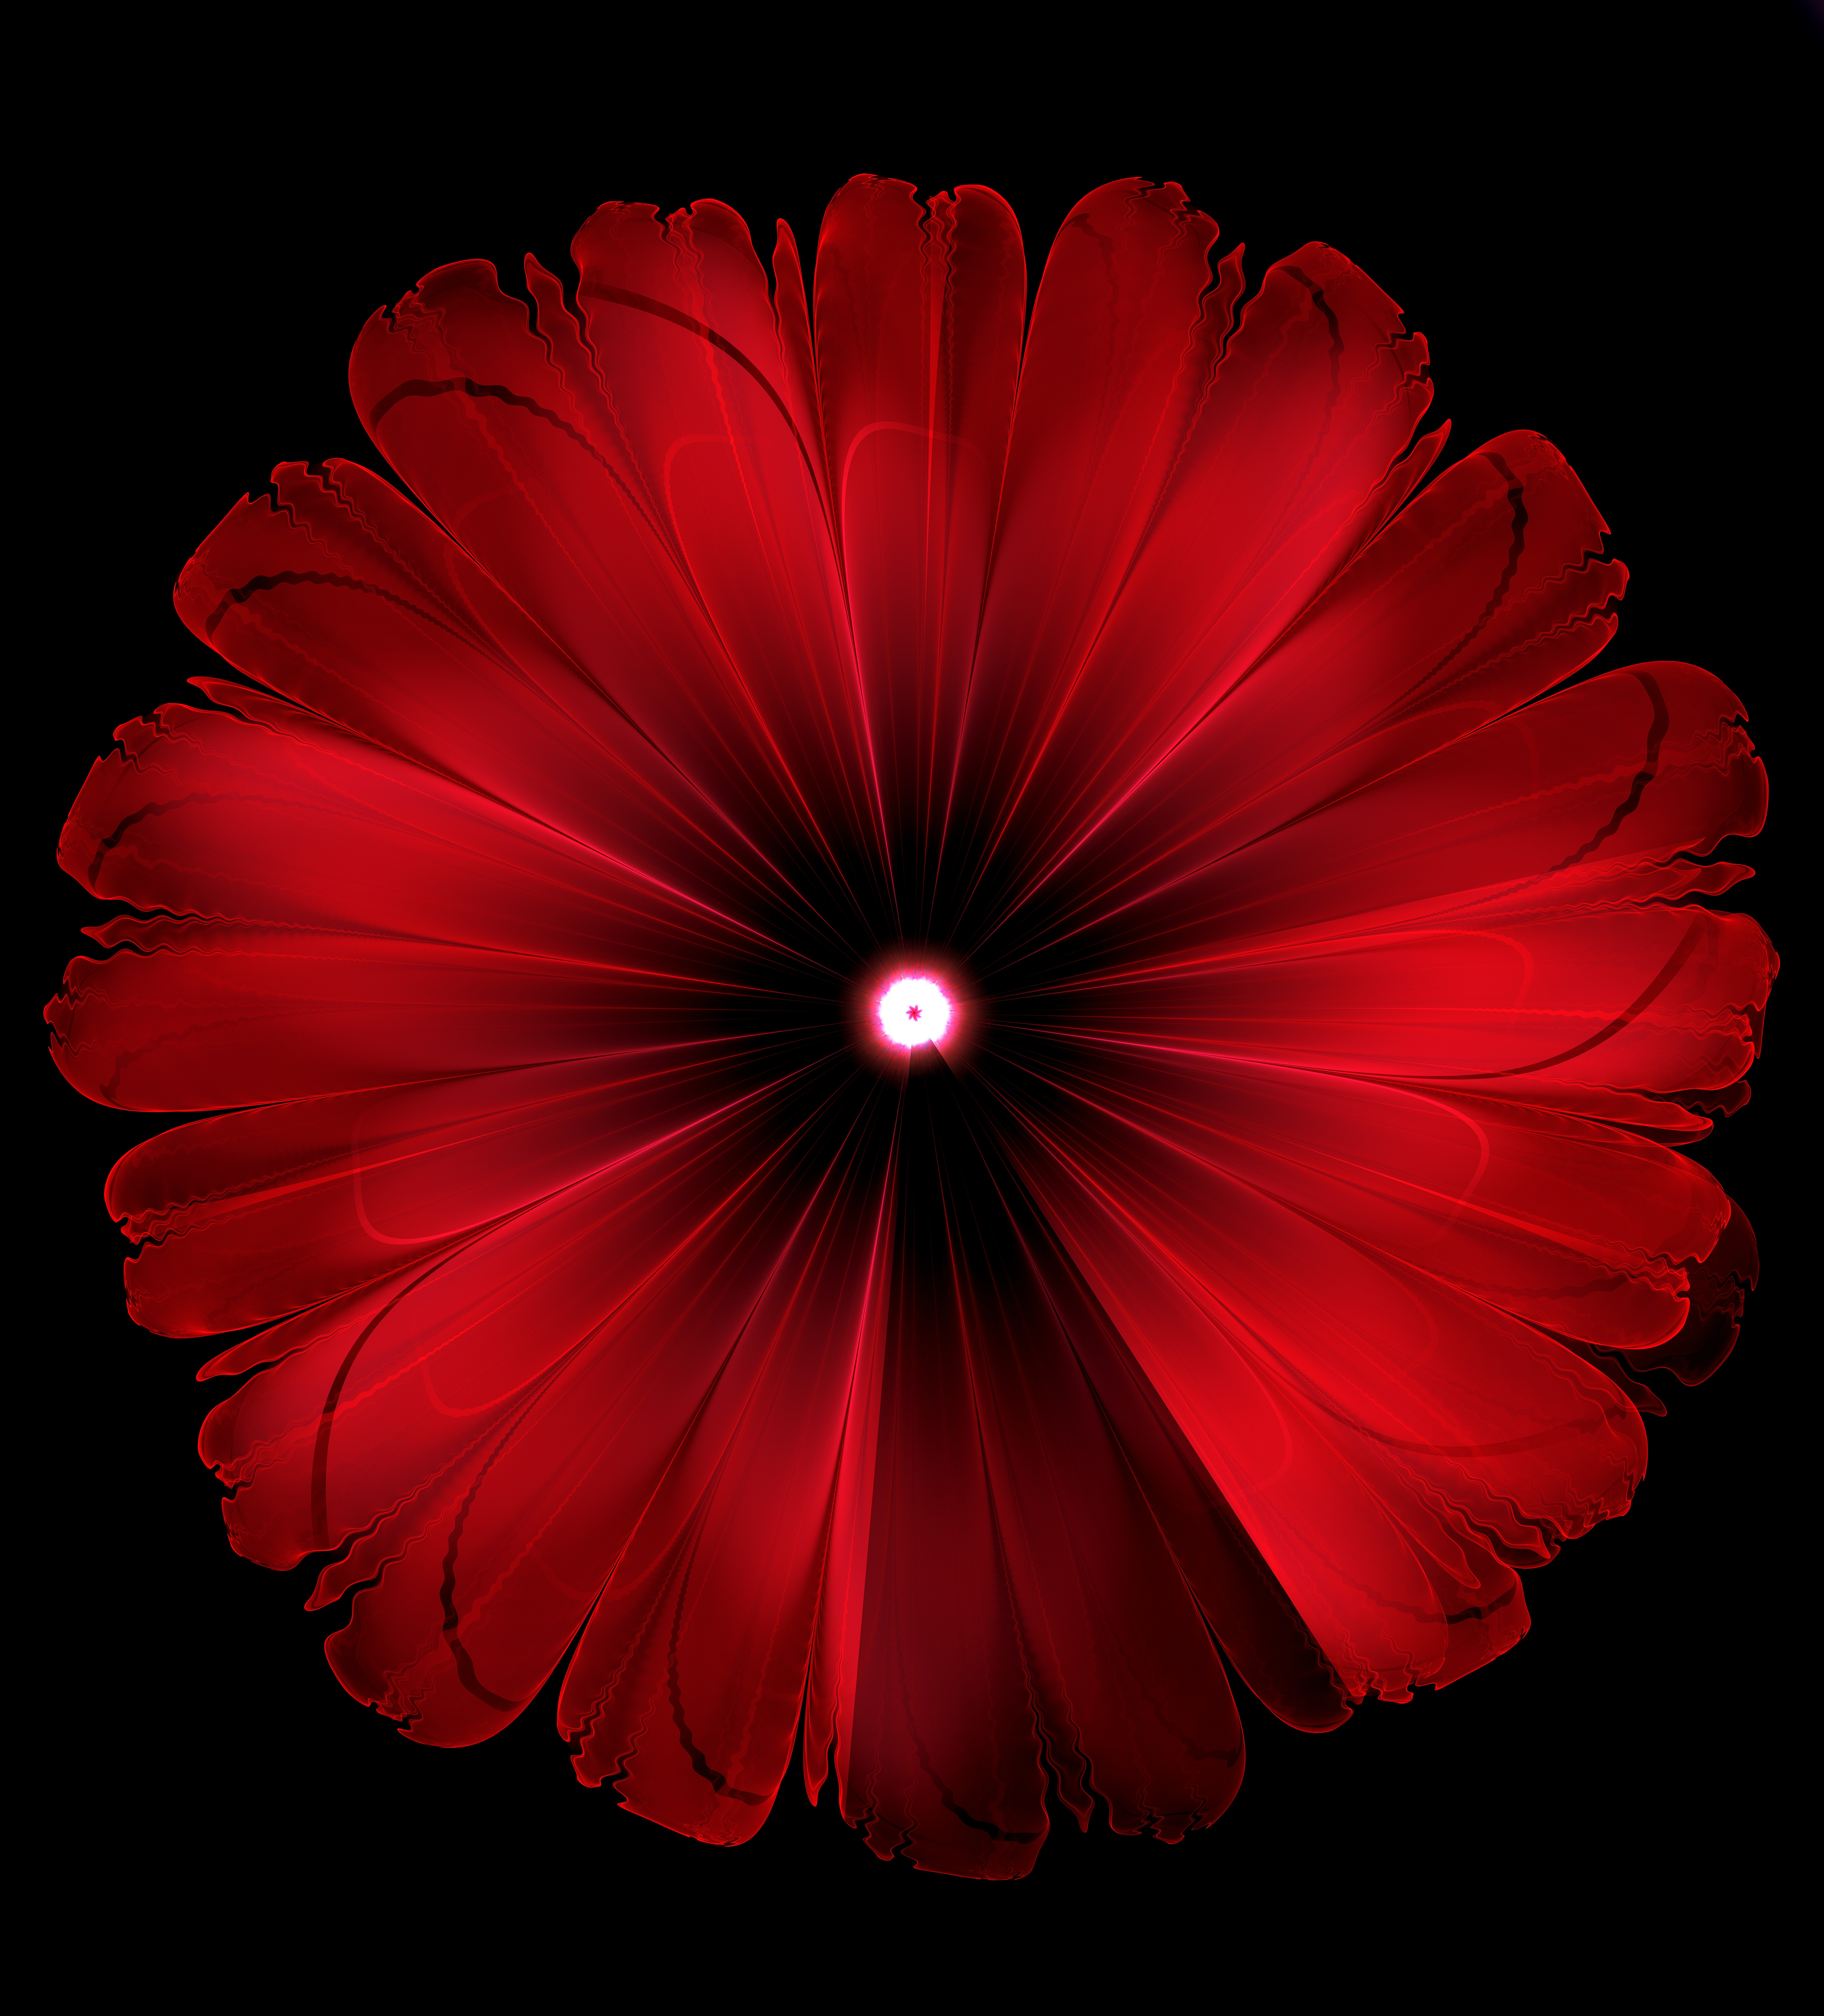 153101 download wallpaper Abstract, Flower, Glow, Fractal, Digital screensavers and pictures for free